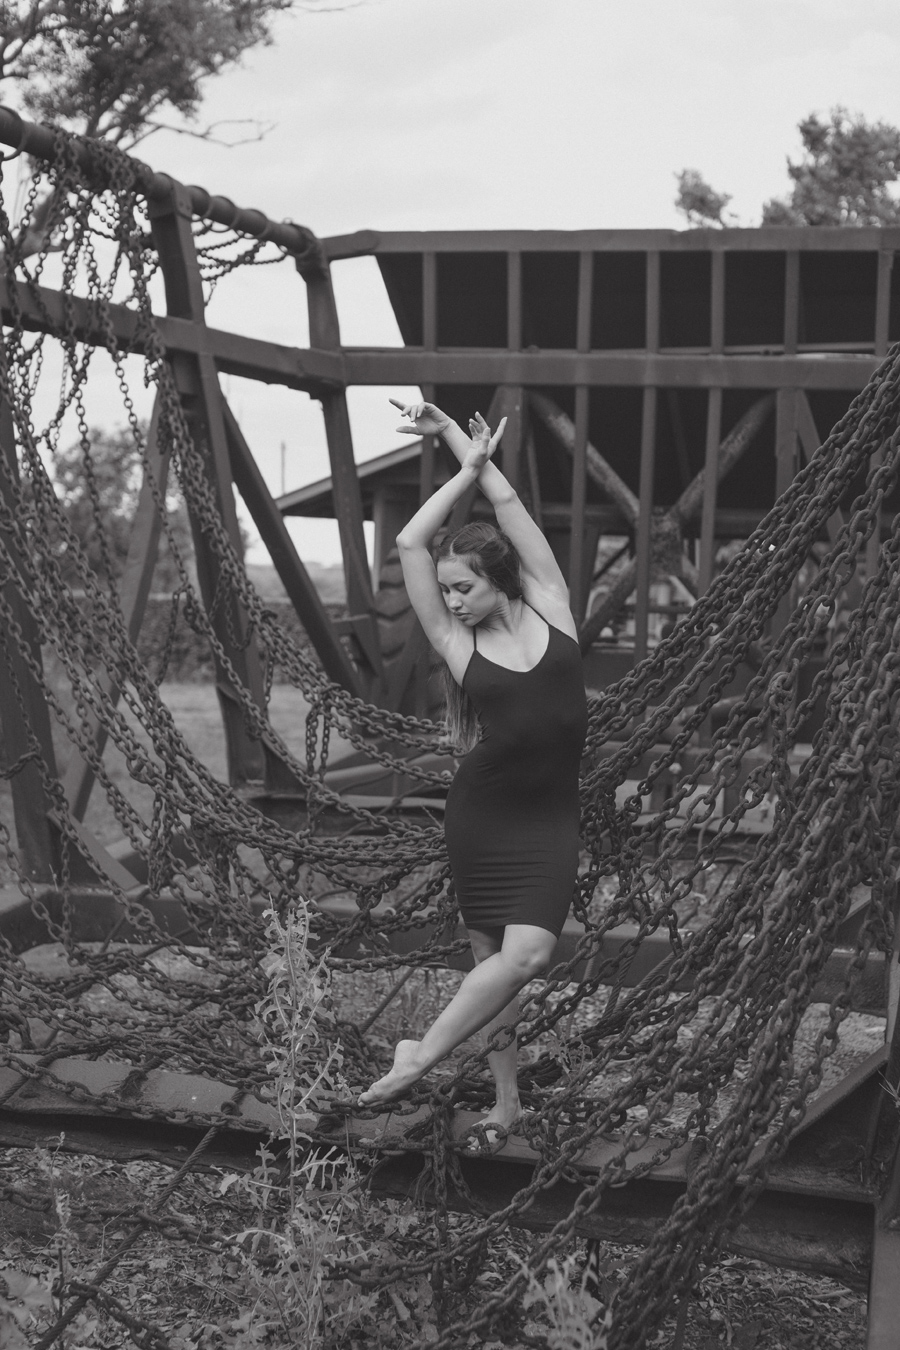 contemporary dance photography black and white